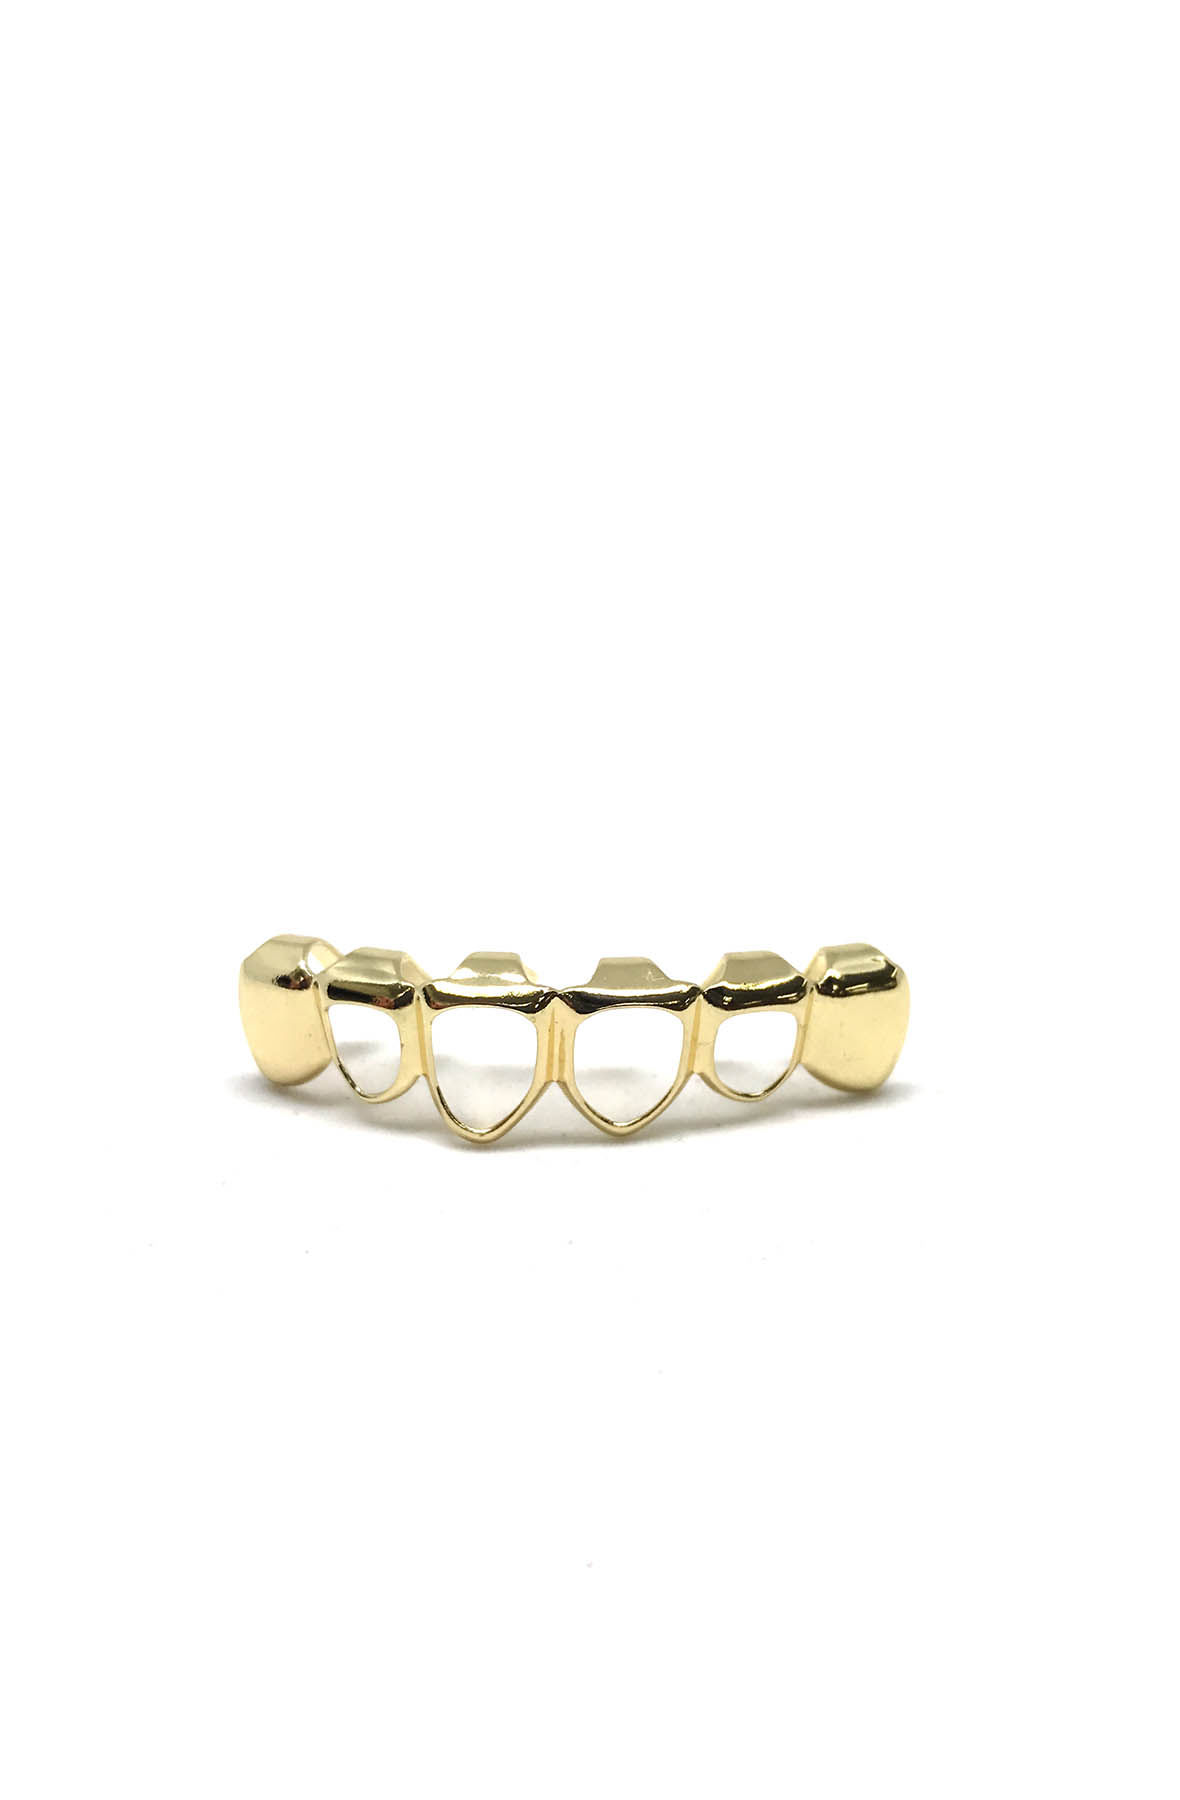 Image of 4 Slot Gold Plated Grill Top